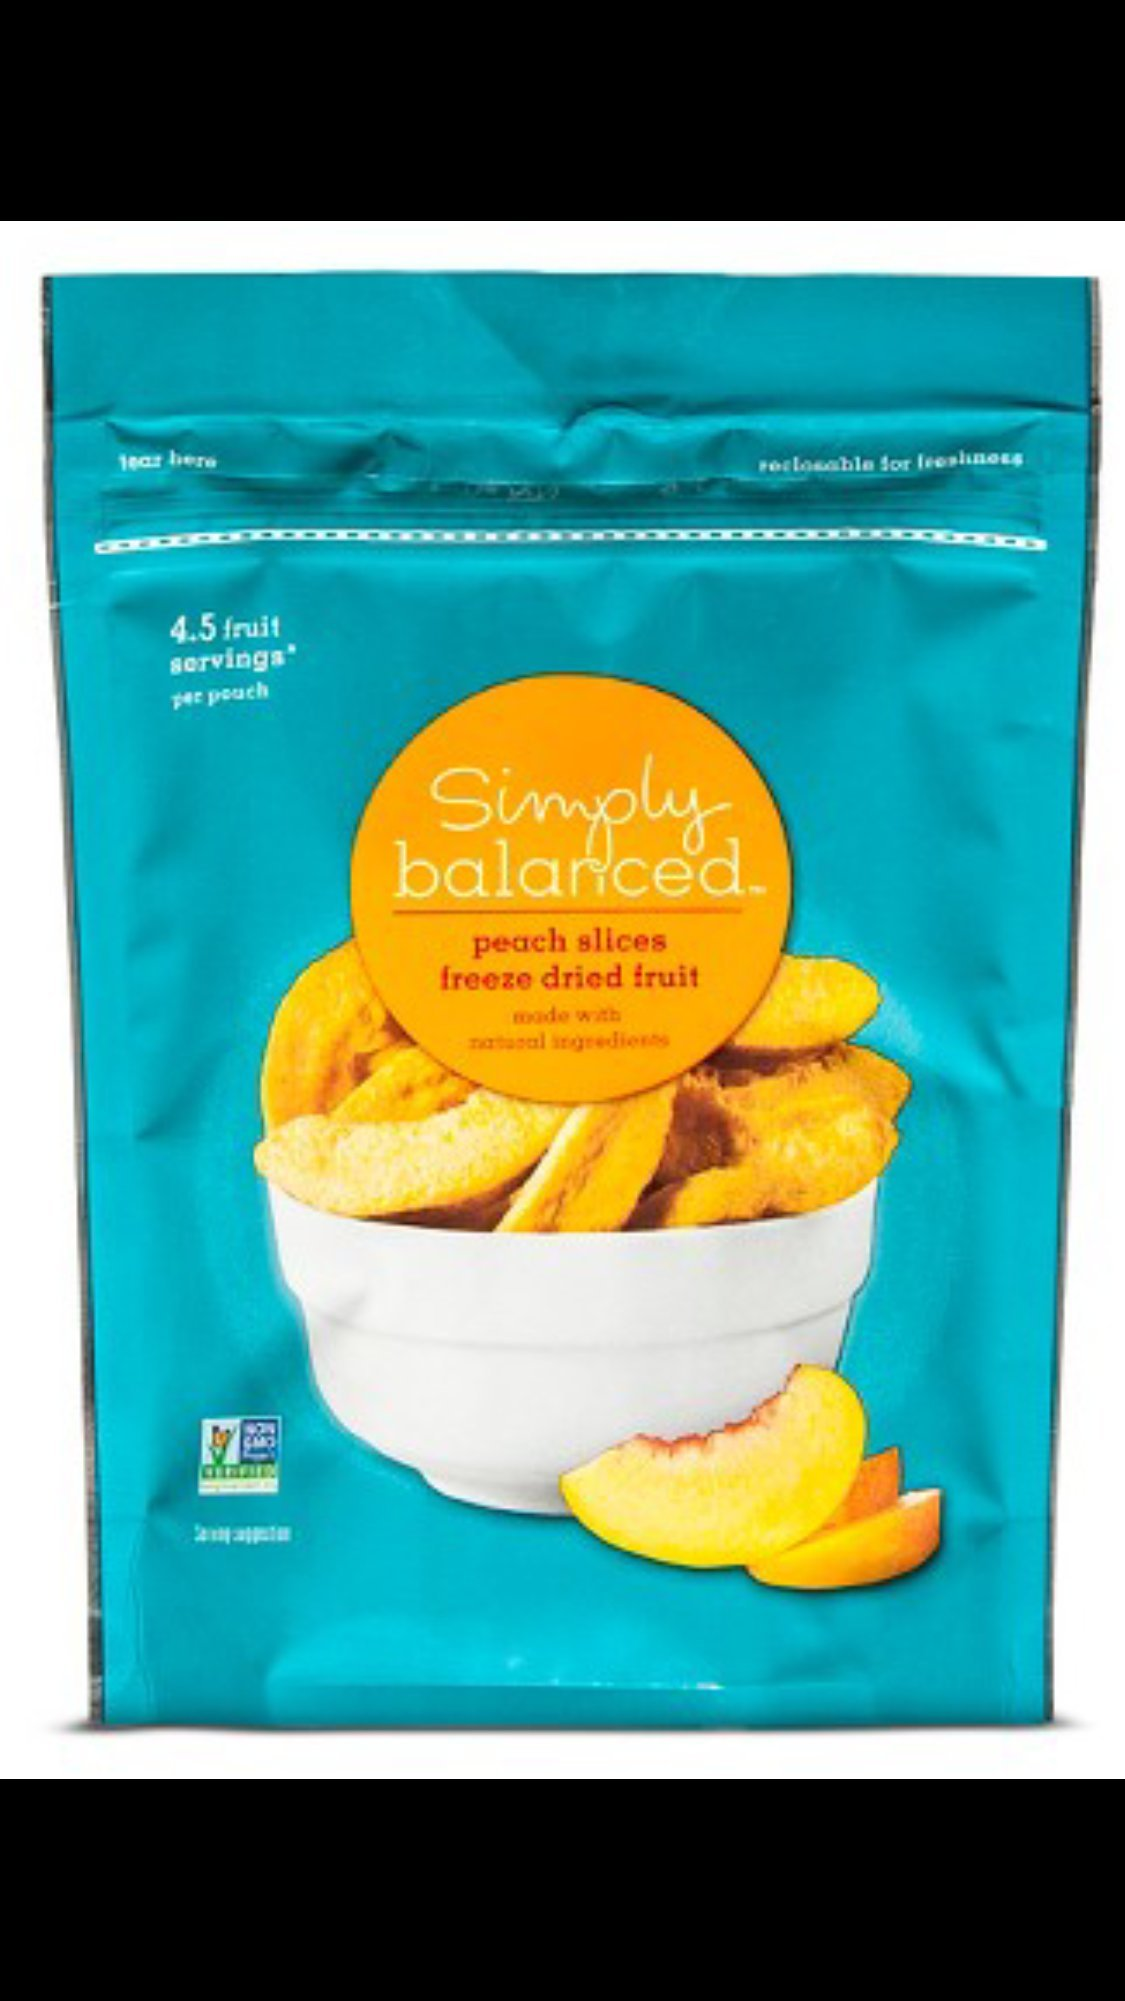 Simply Balanced Peach Slices Freeze Dried Fruit, 1.25 Ounce Bag, 4.5 Fruit Servings per bag